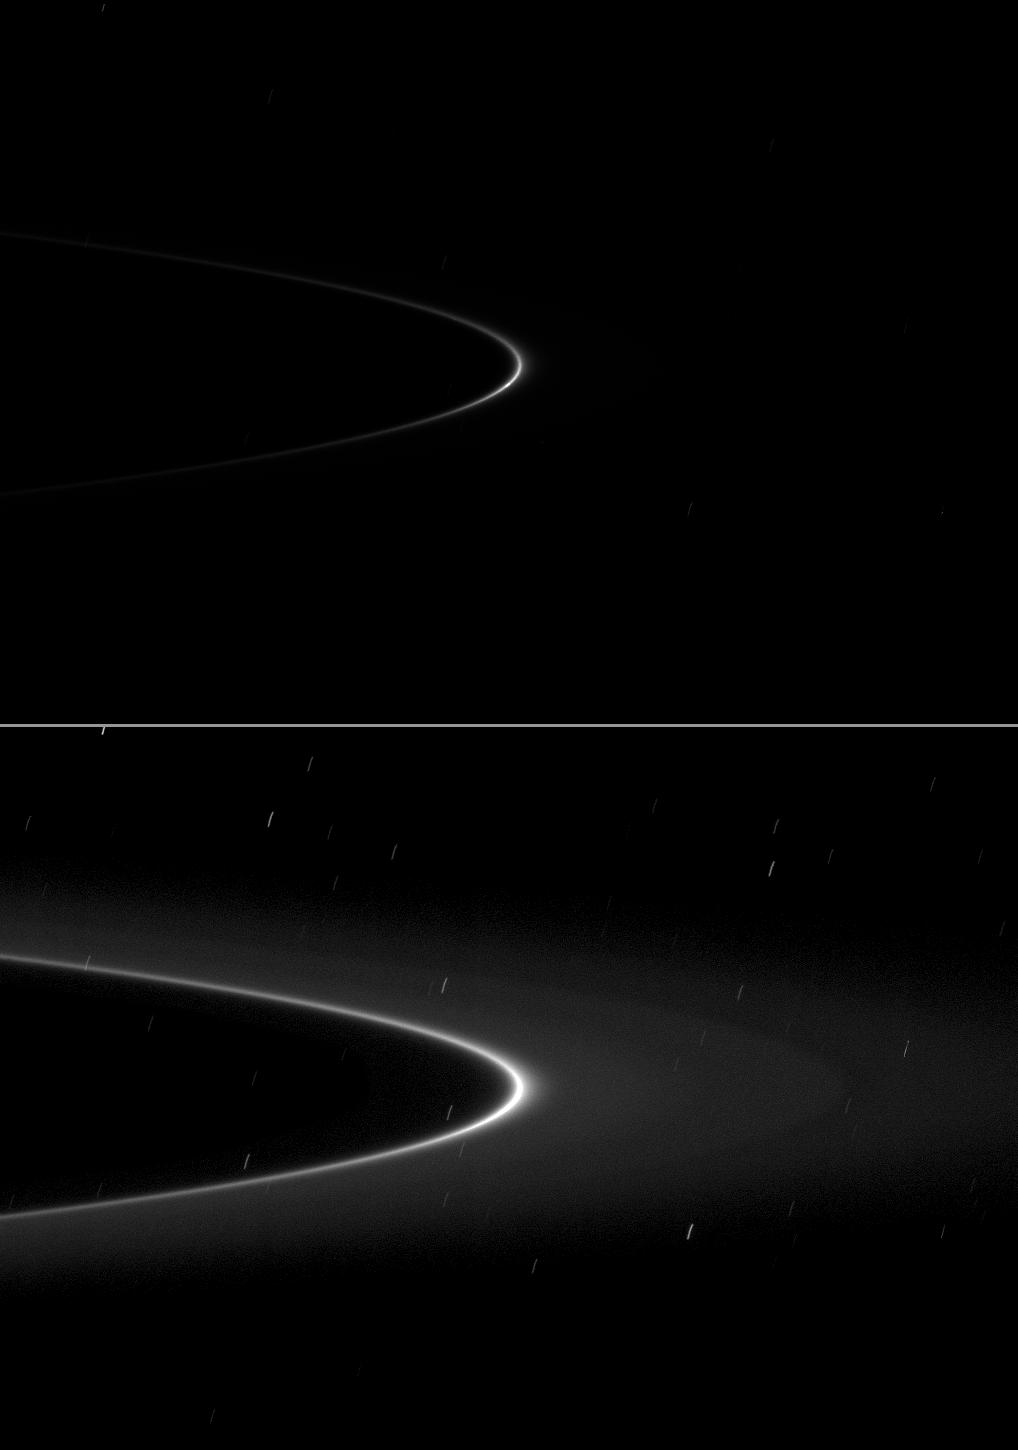 A small moonlet is just visible as a short streak near the ansa of the G ring arc in the top of two versions of the same image.